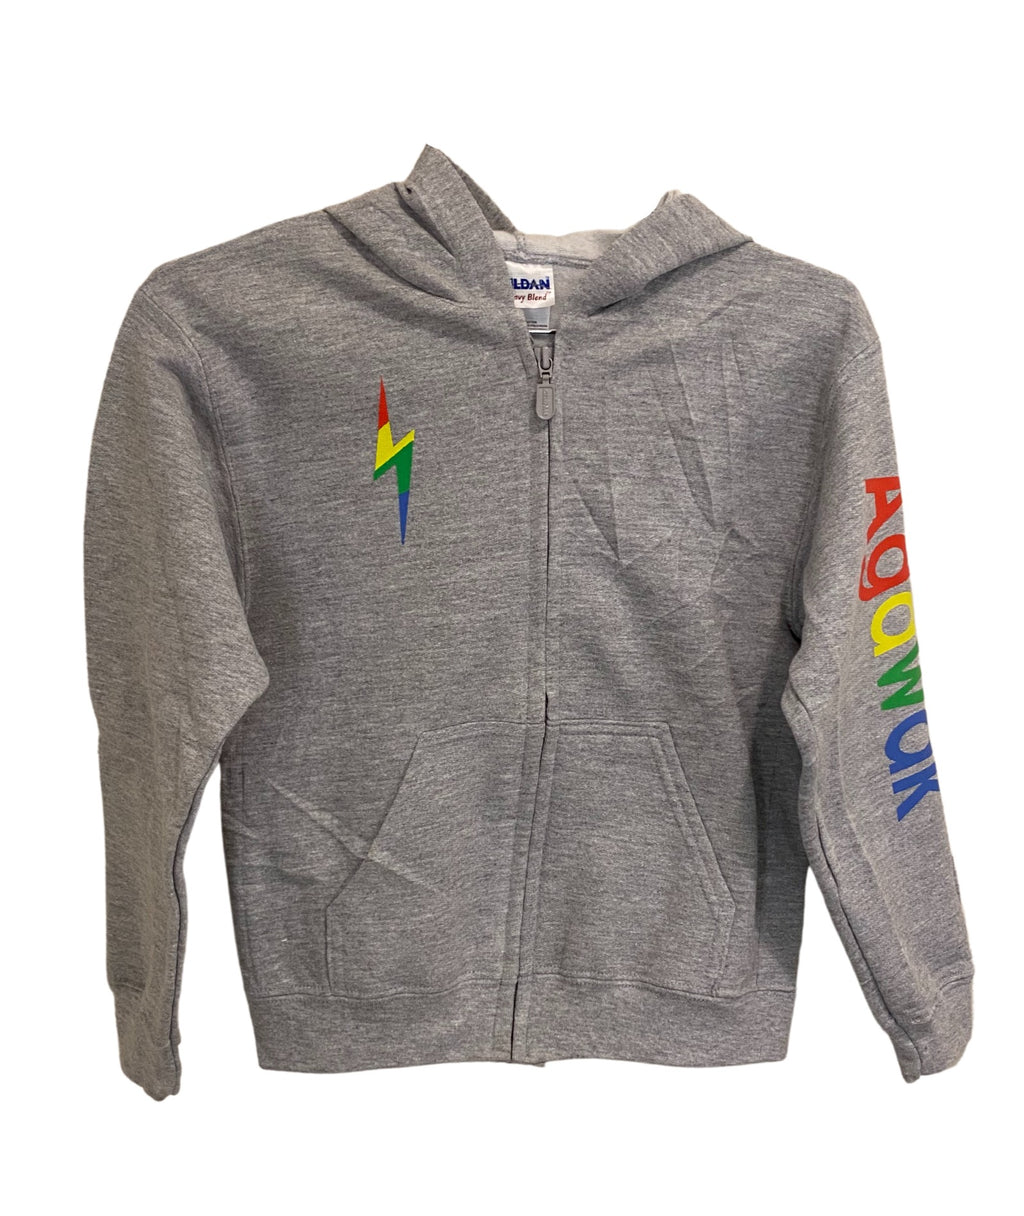 Gildan Heather Grey Zip Hoodie With Rainbow Camp Lettering and Bolt